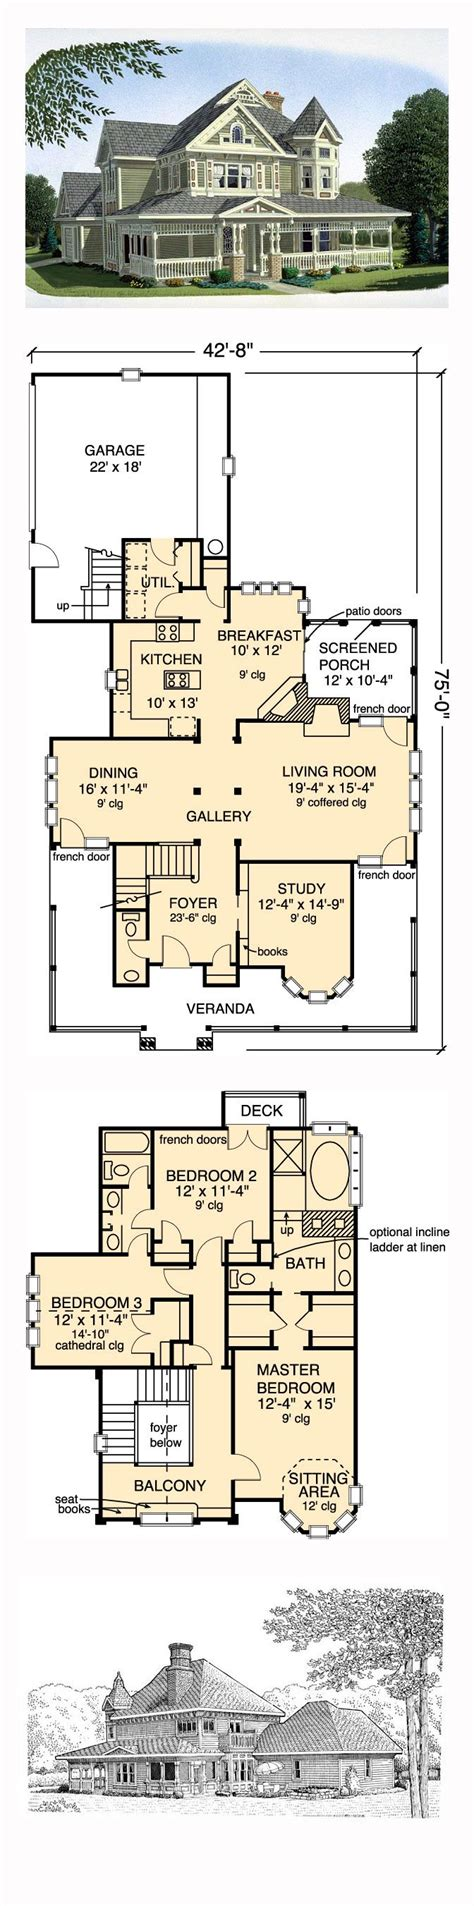 6 bedroom victorian house plans - 28 images - house plan beautiful 6 ...